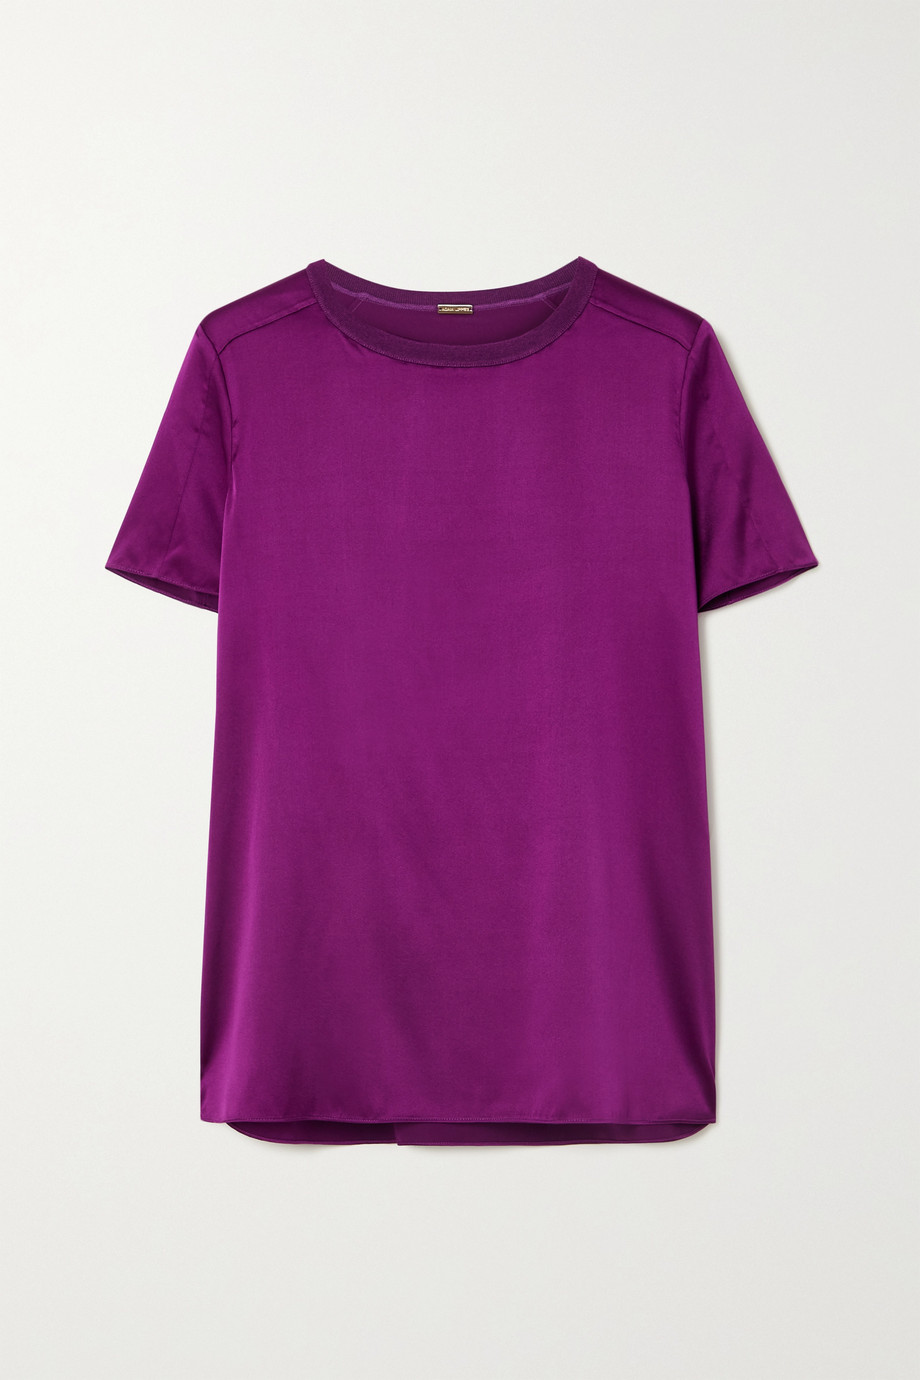 Adam Lippes Stretch-silk charmeuse T-shirt